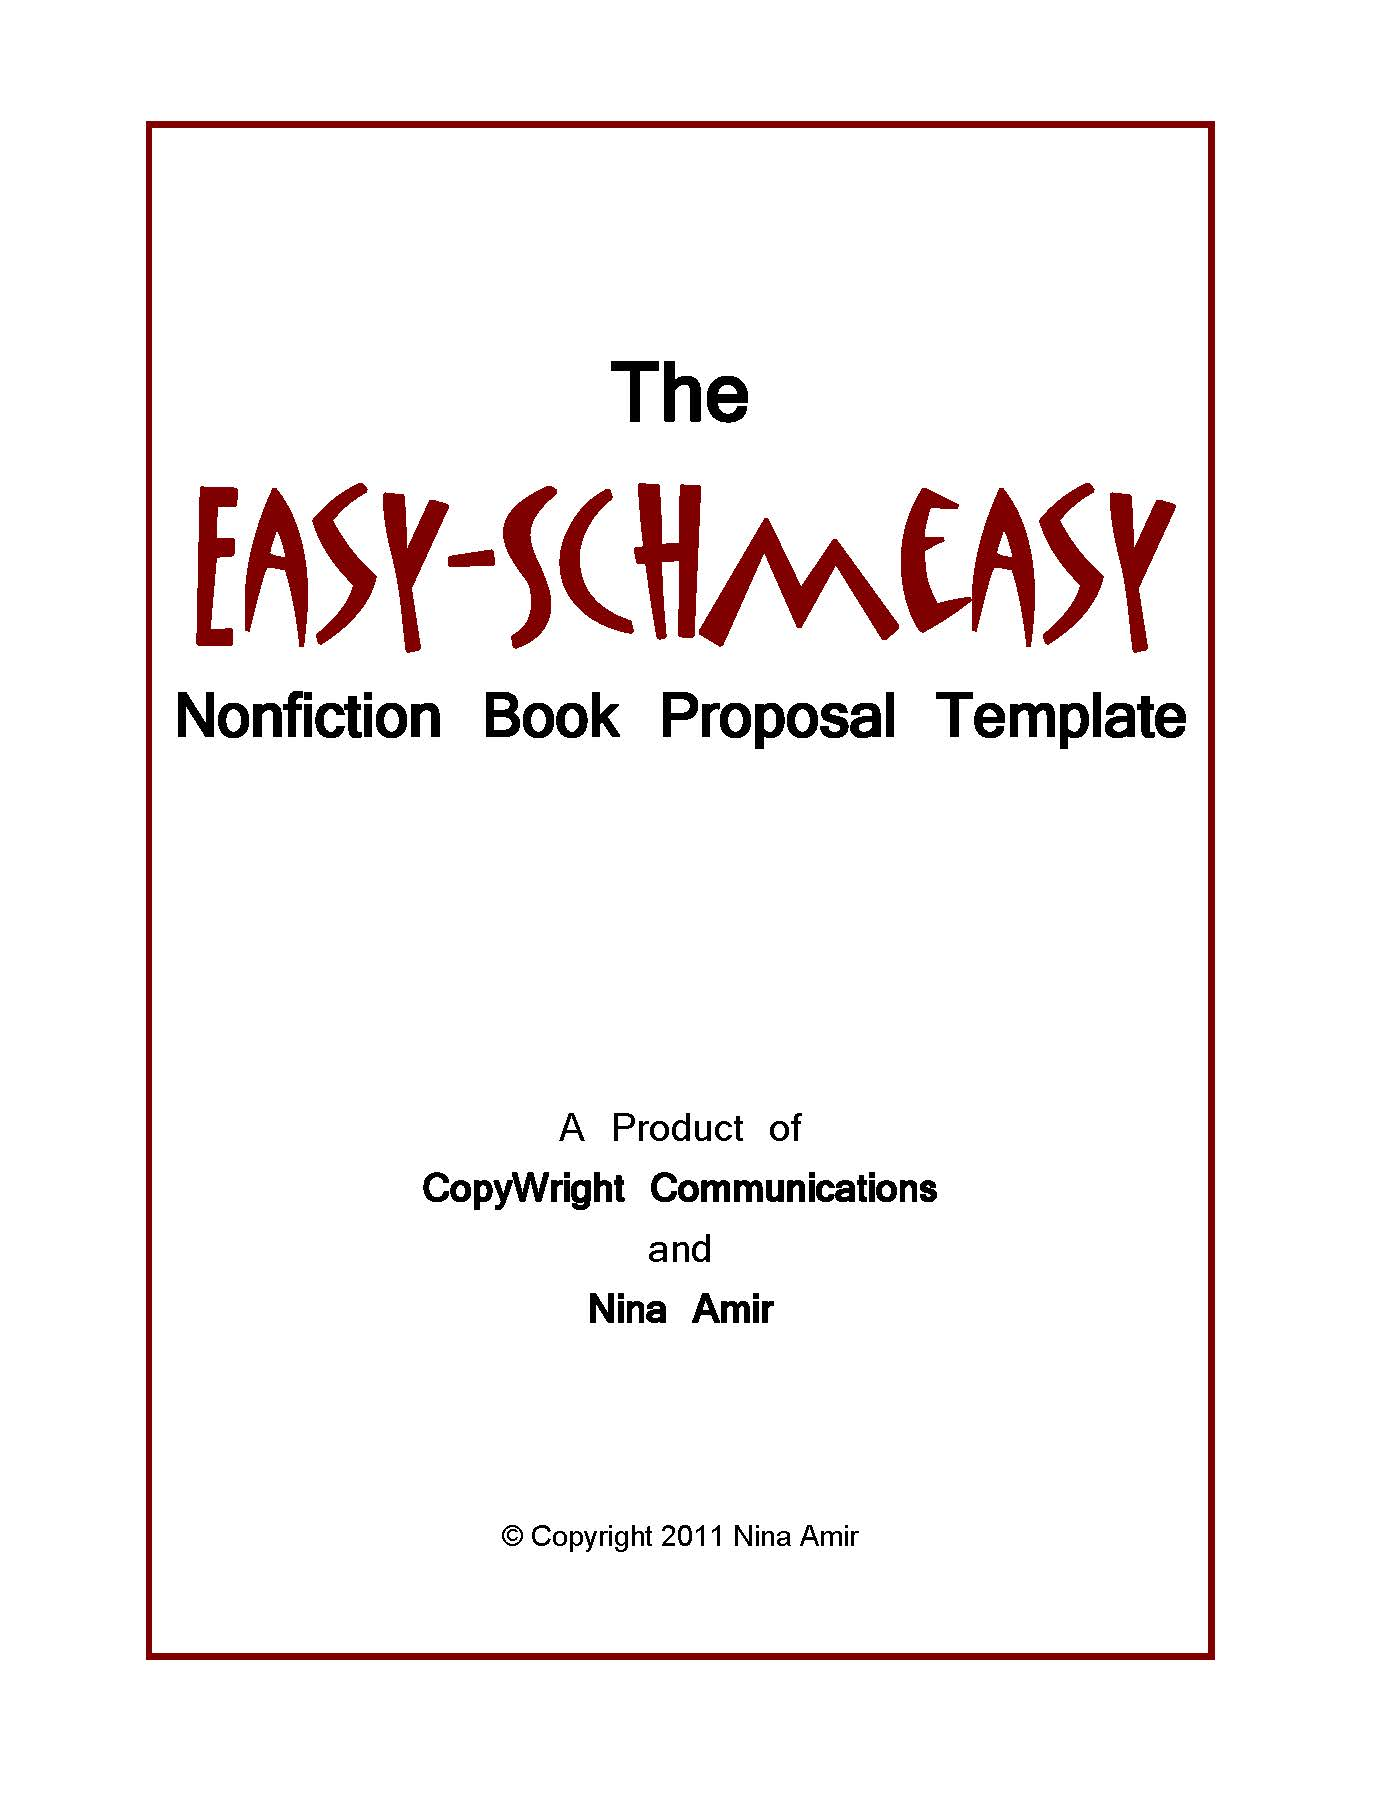 writing a book template word - easy schmeasy book proposal template write nonfiction now